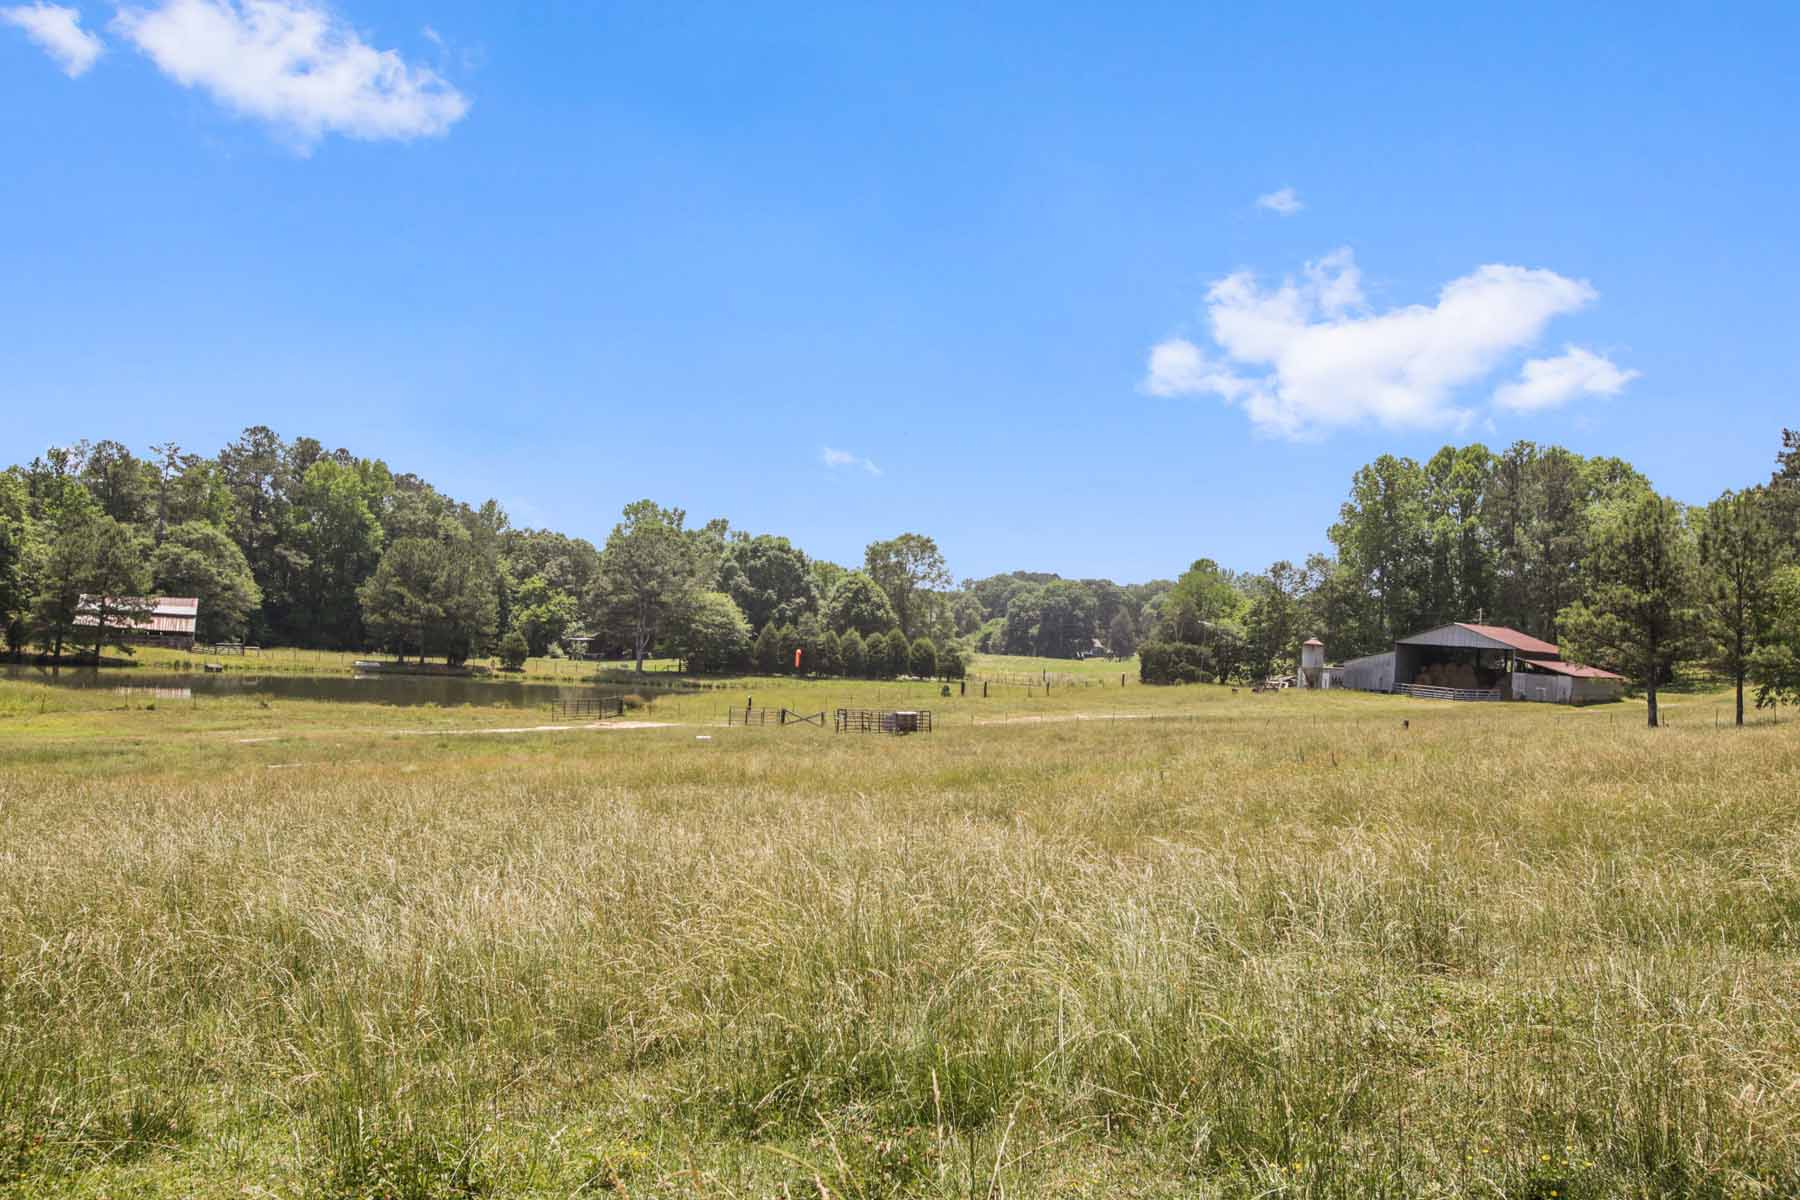 Земля для того Продажа на Rolling Pastures With Ponds and Beautiful Hardwoods 7770 Jones Ferry Road Chattahoochee Hills, Джорджия 30268 Соединенные Штаты